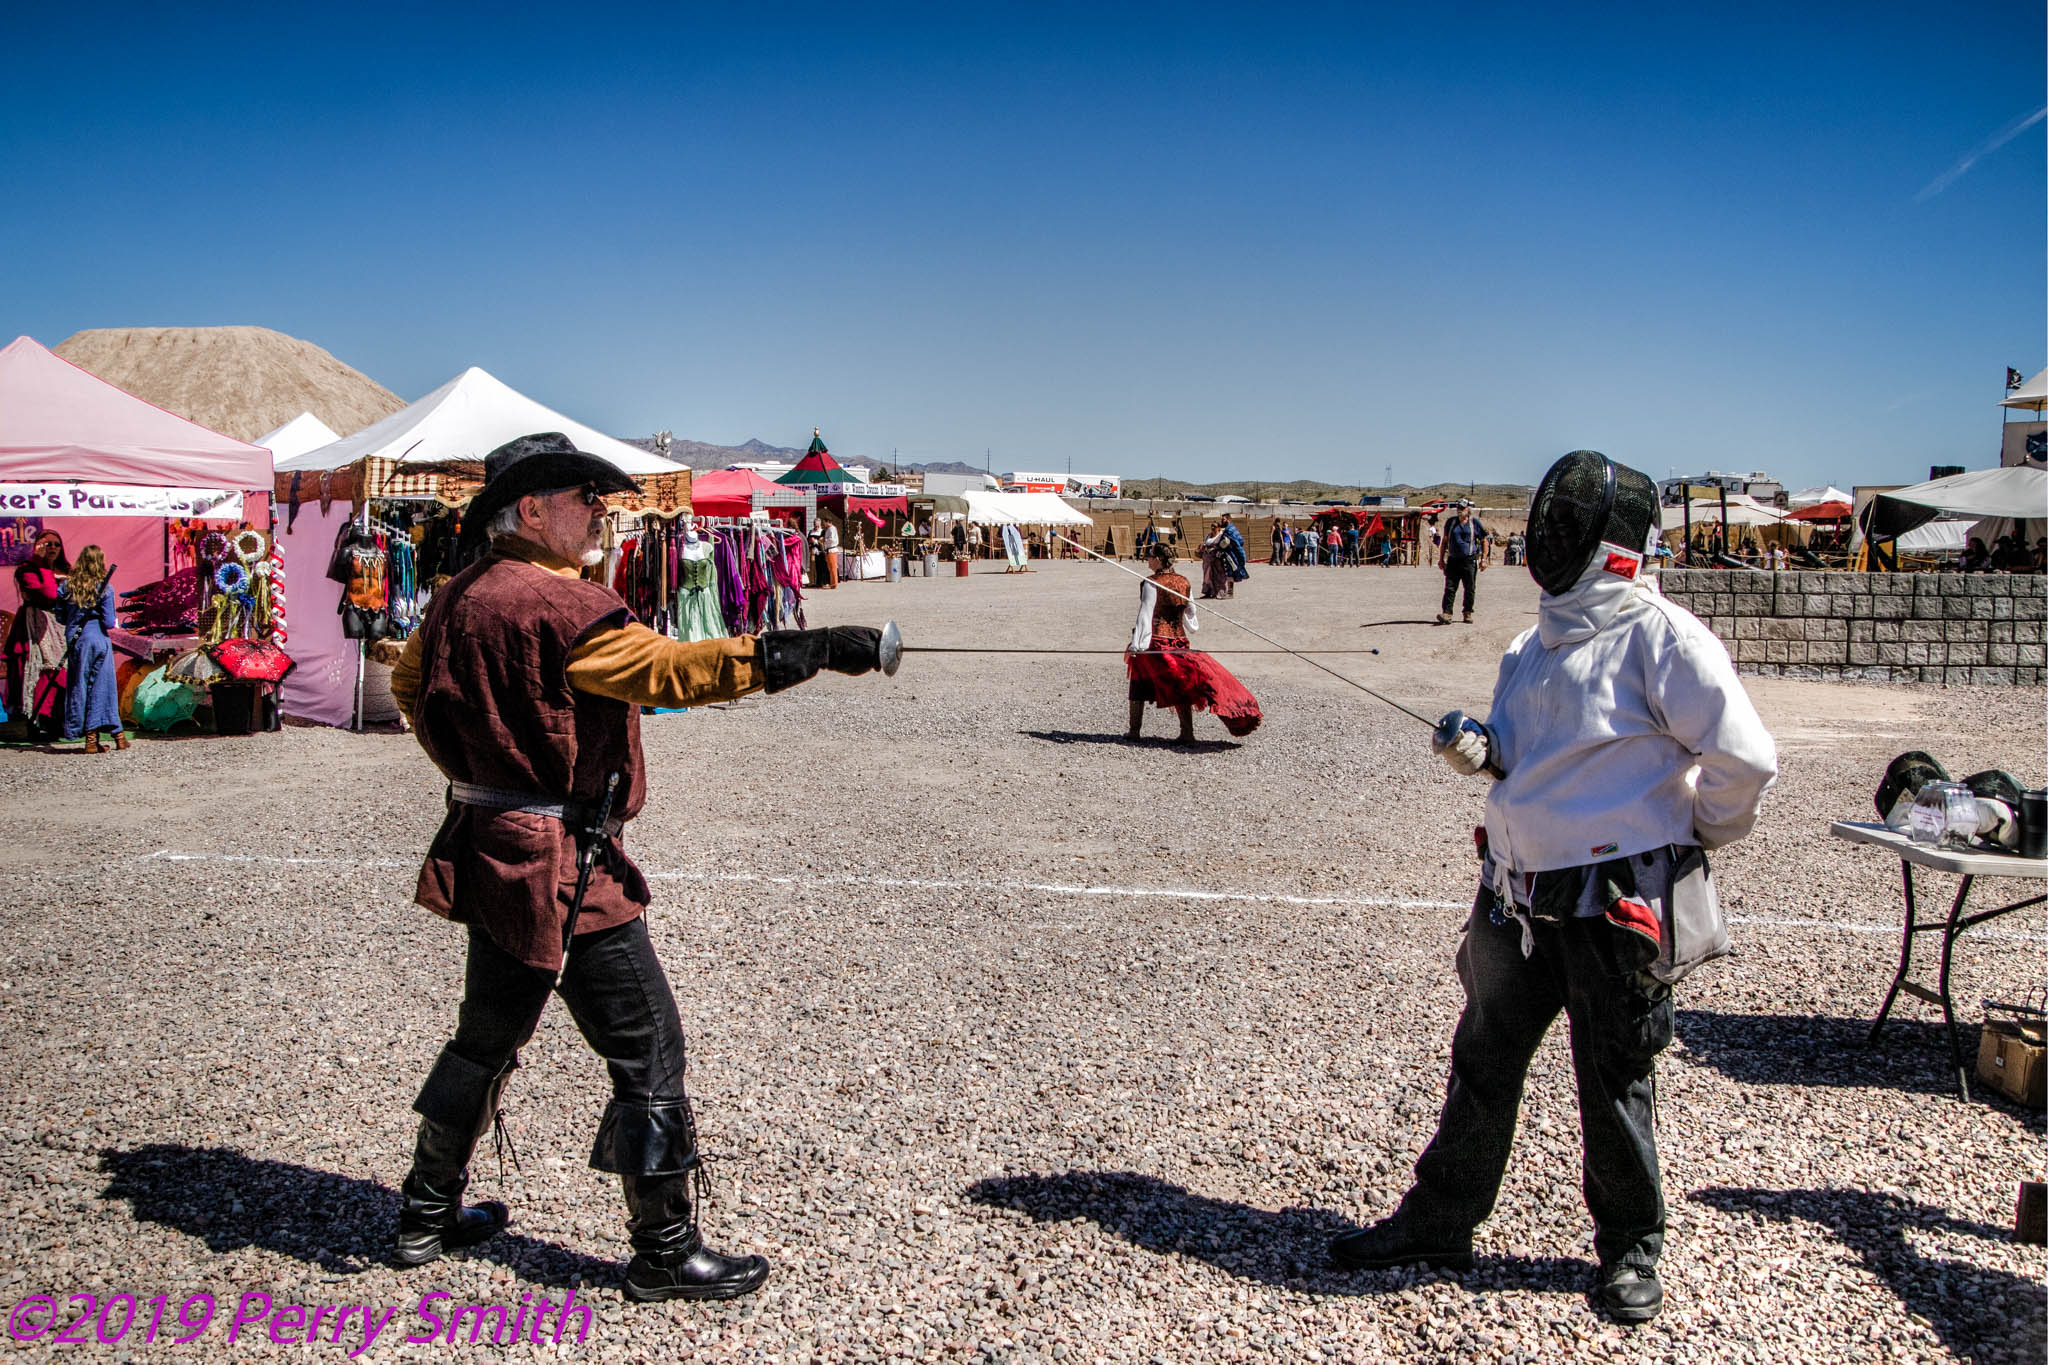 Sword Fighting school. One of our free educational activities